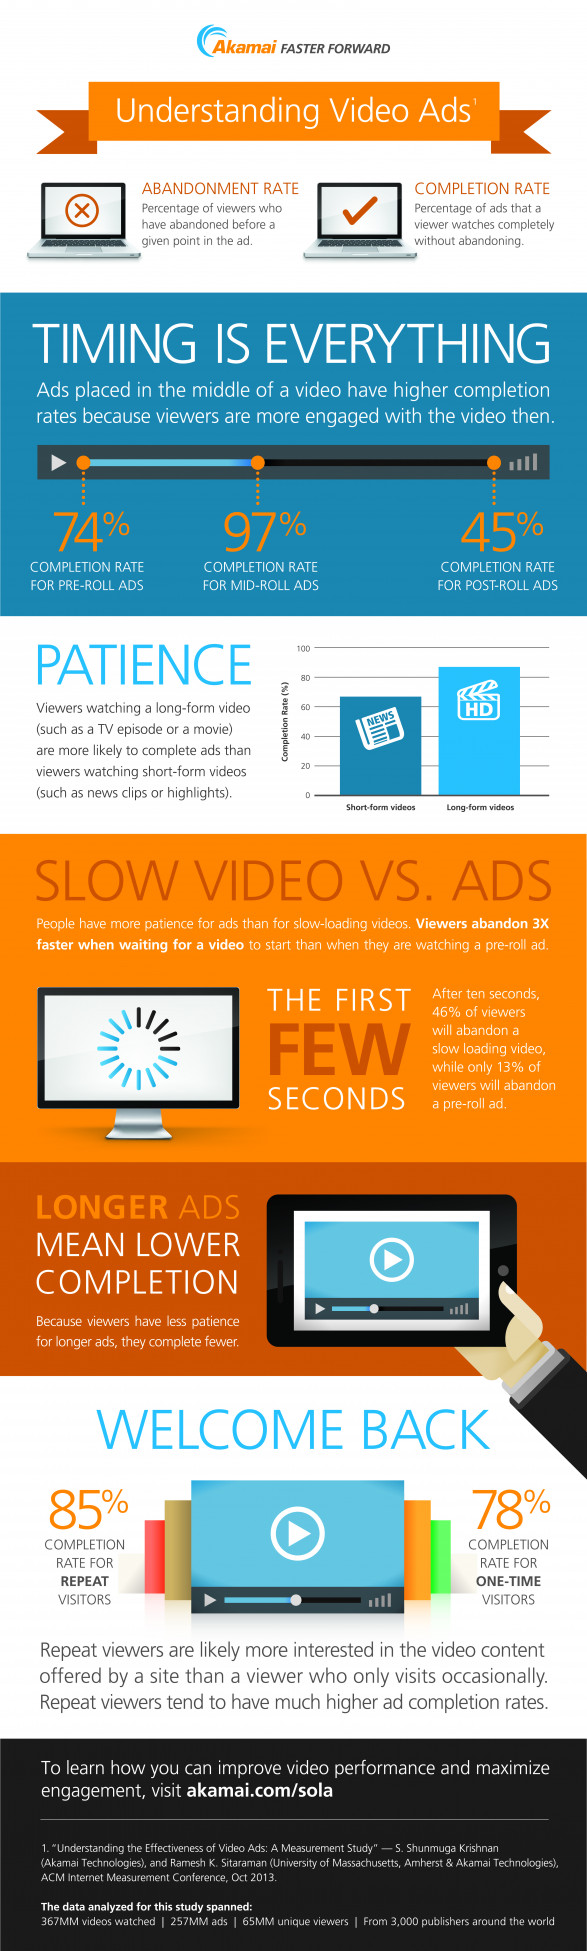 Understanding Video Ads